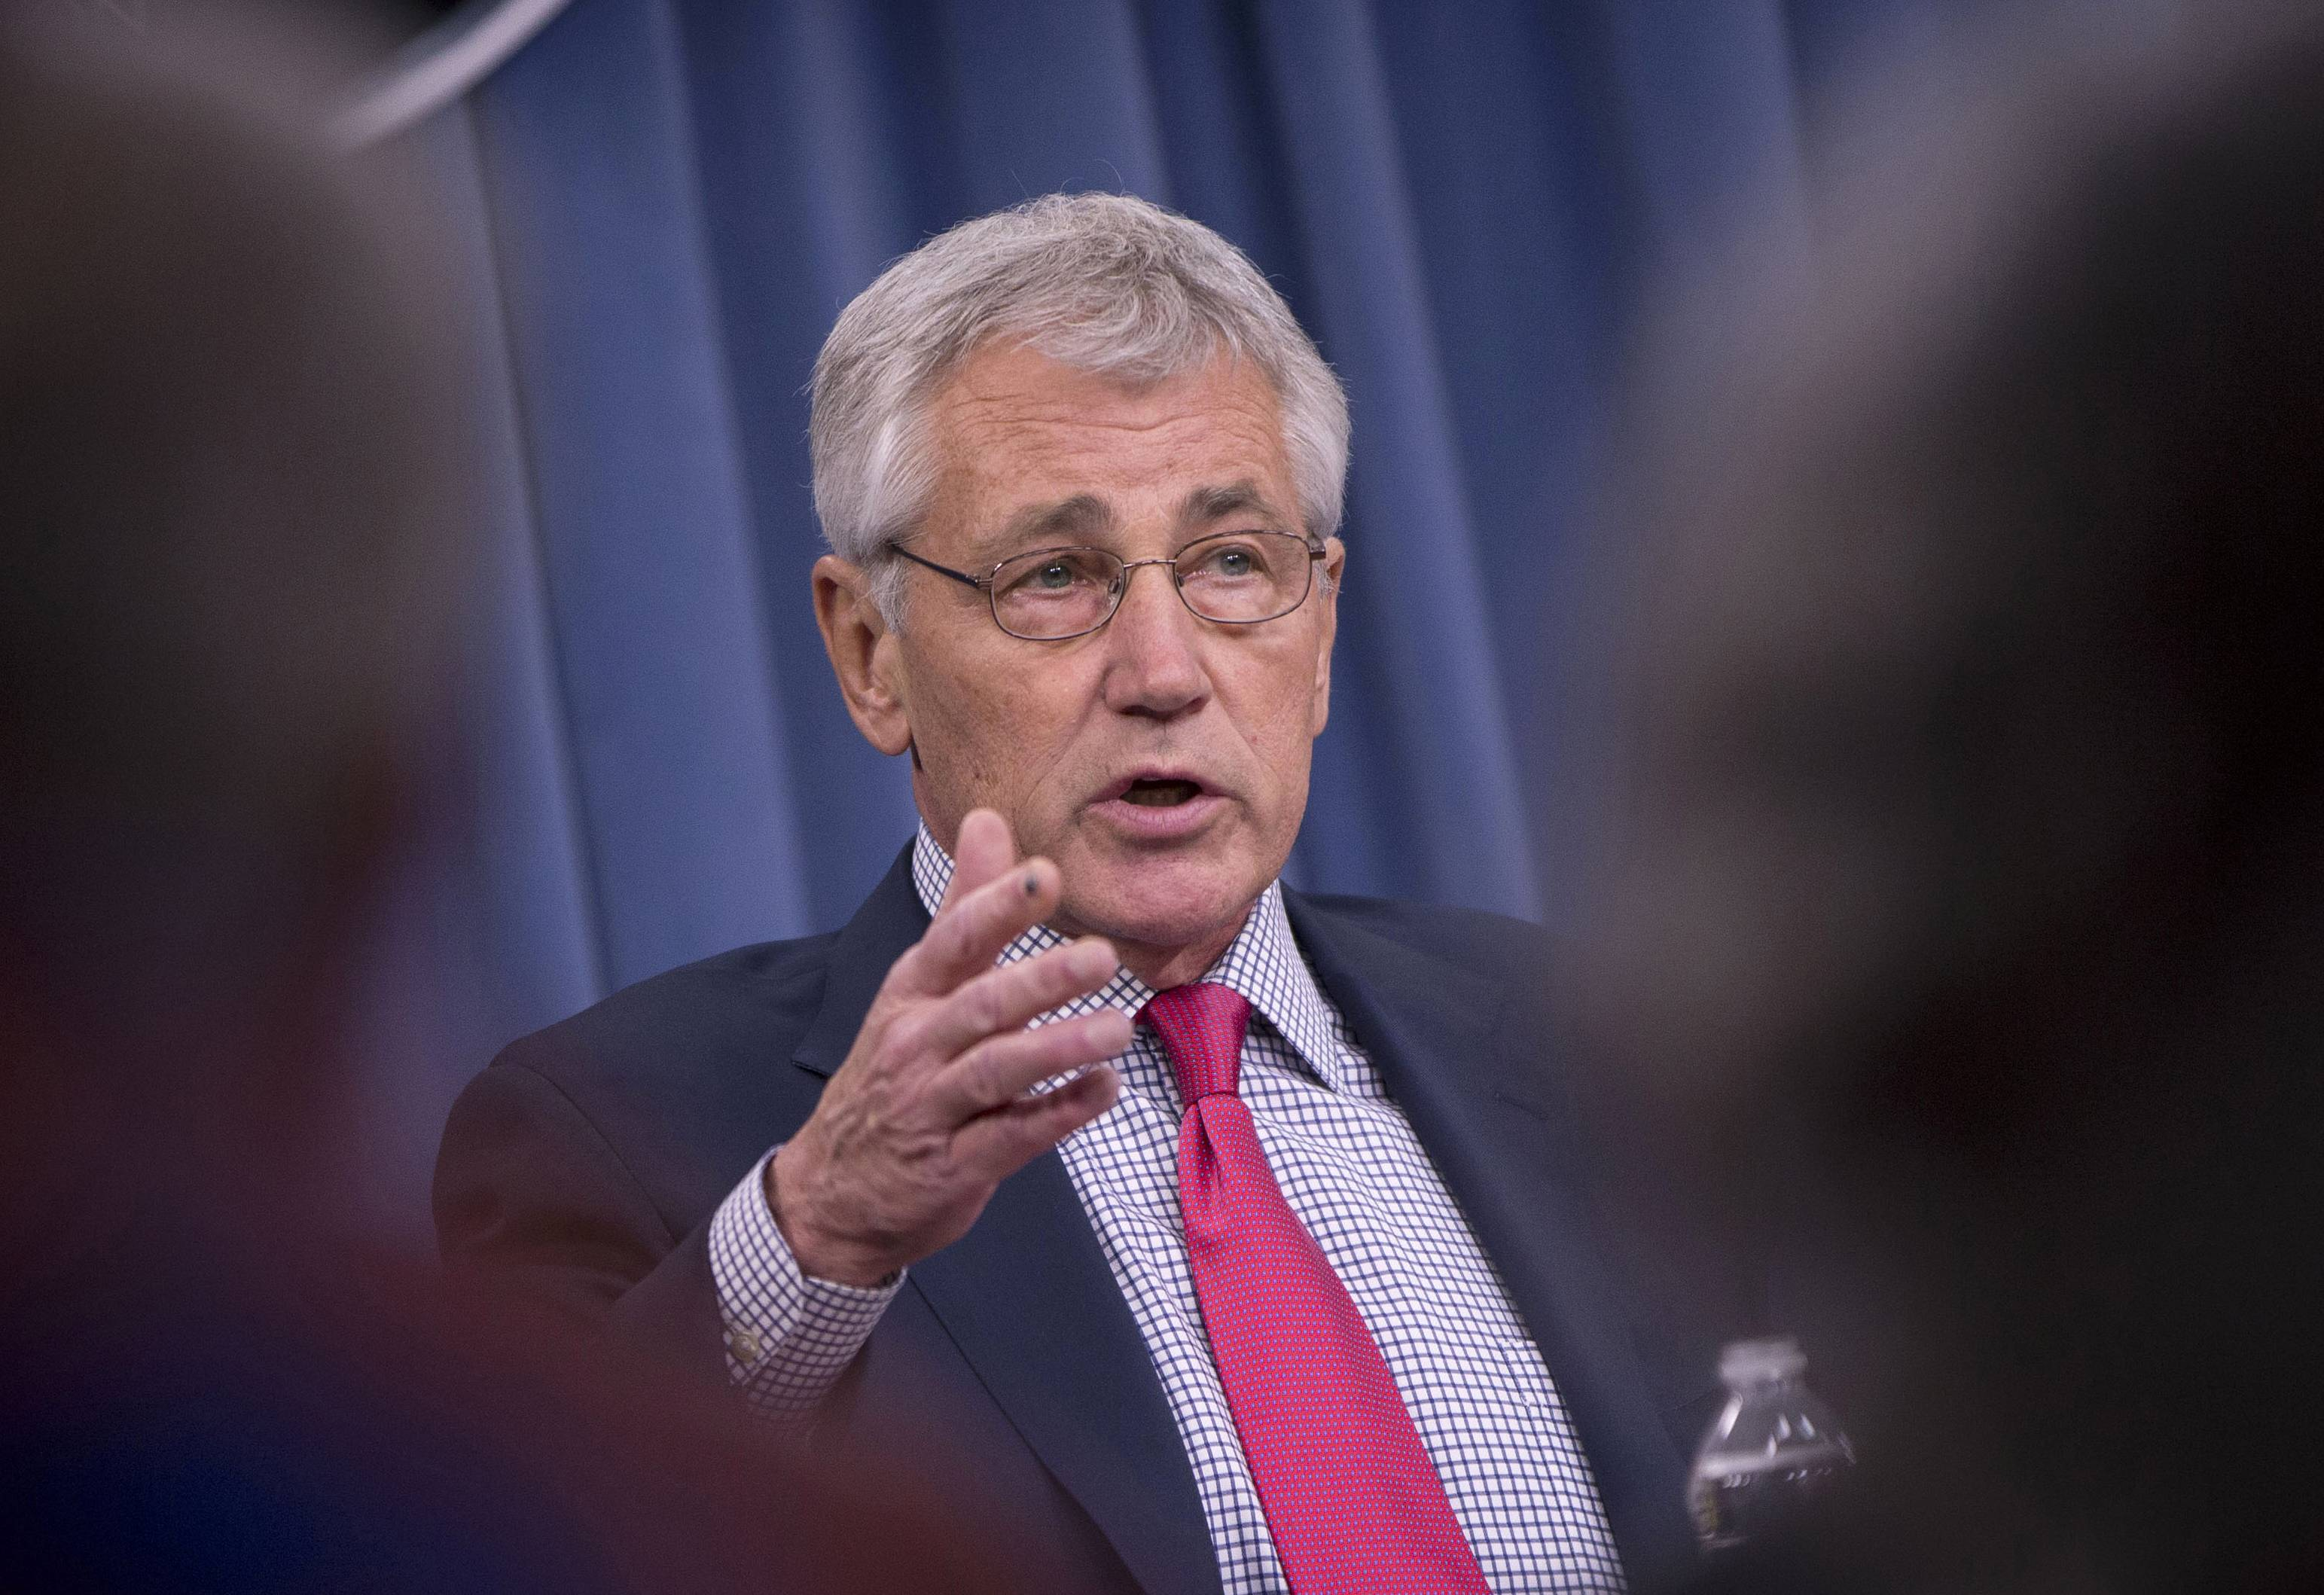 Defense Secretary Chuck Hagel, seen here in an appearance last month, said Thursday that U.S. airstrikes have helped Iraqi and Kurdish forces regain their footing in Iraq, but he expects Islamic State militants will regroup and stage a new offensive.